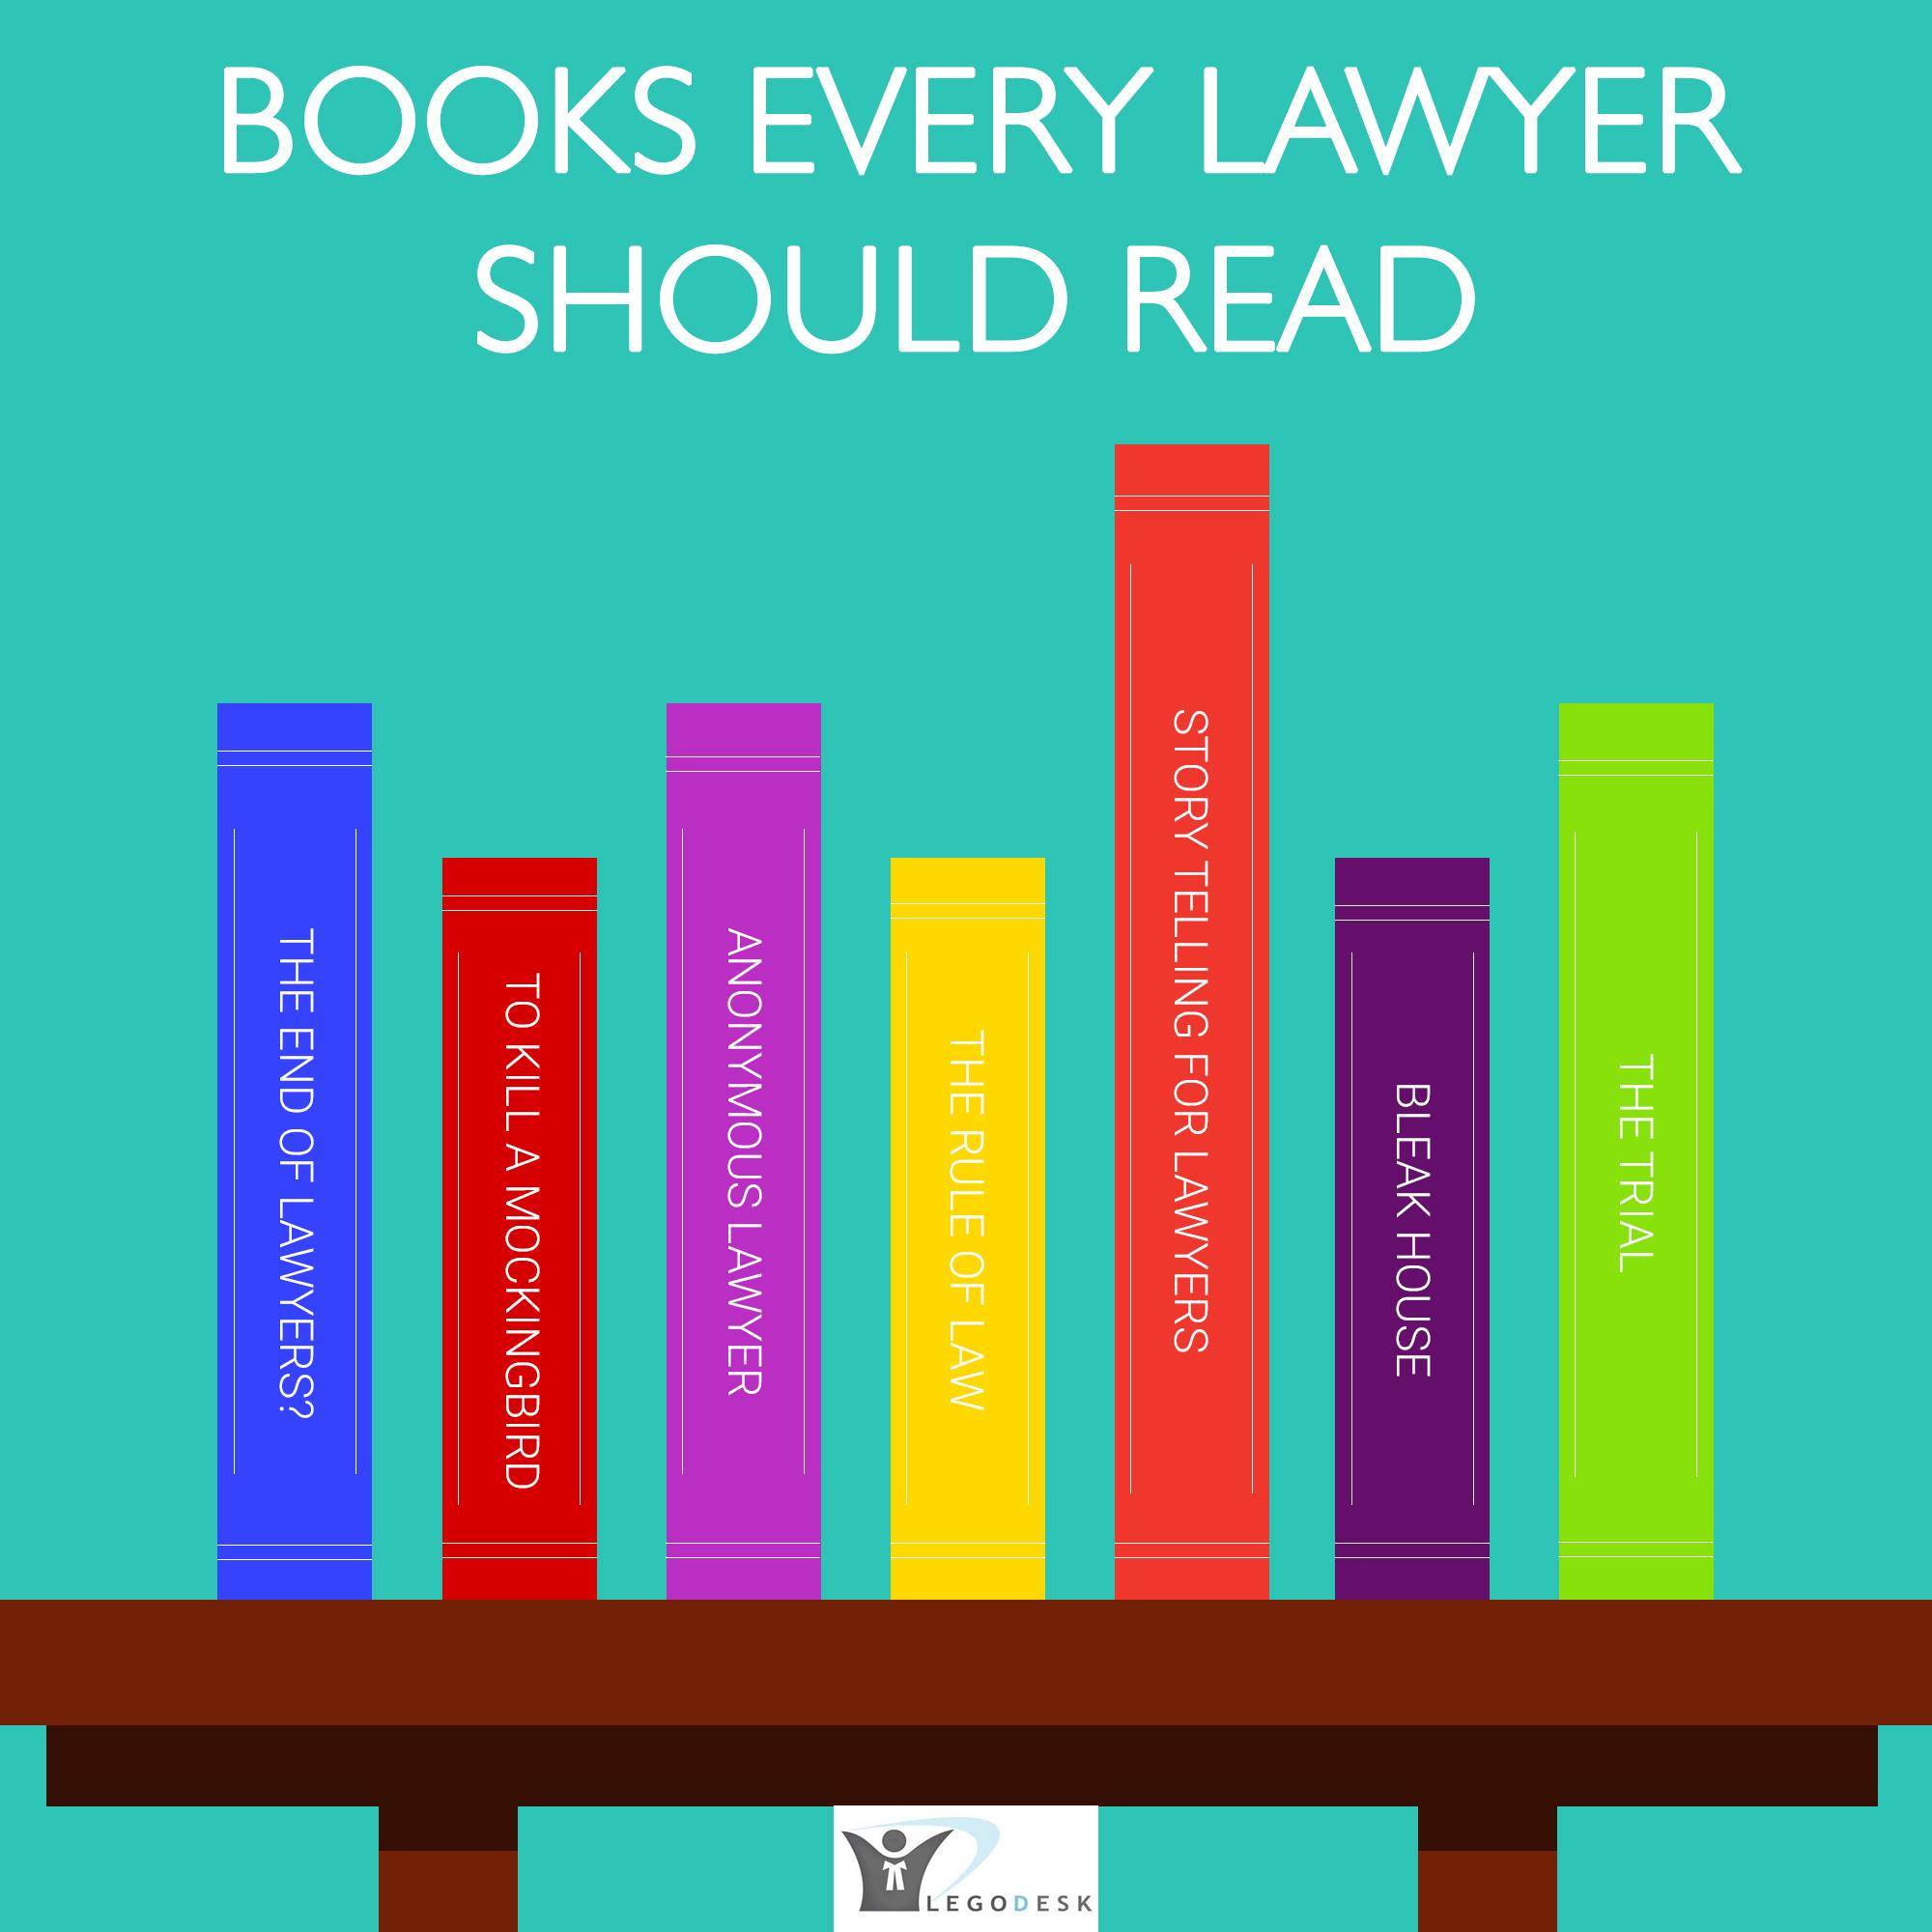 famous law books